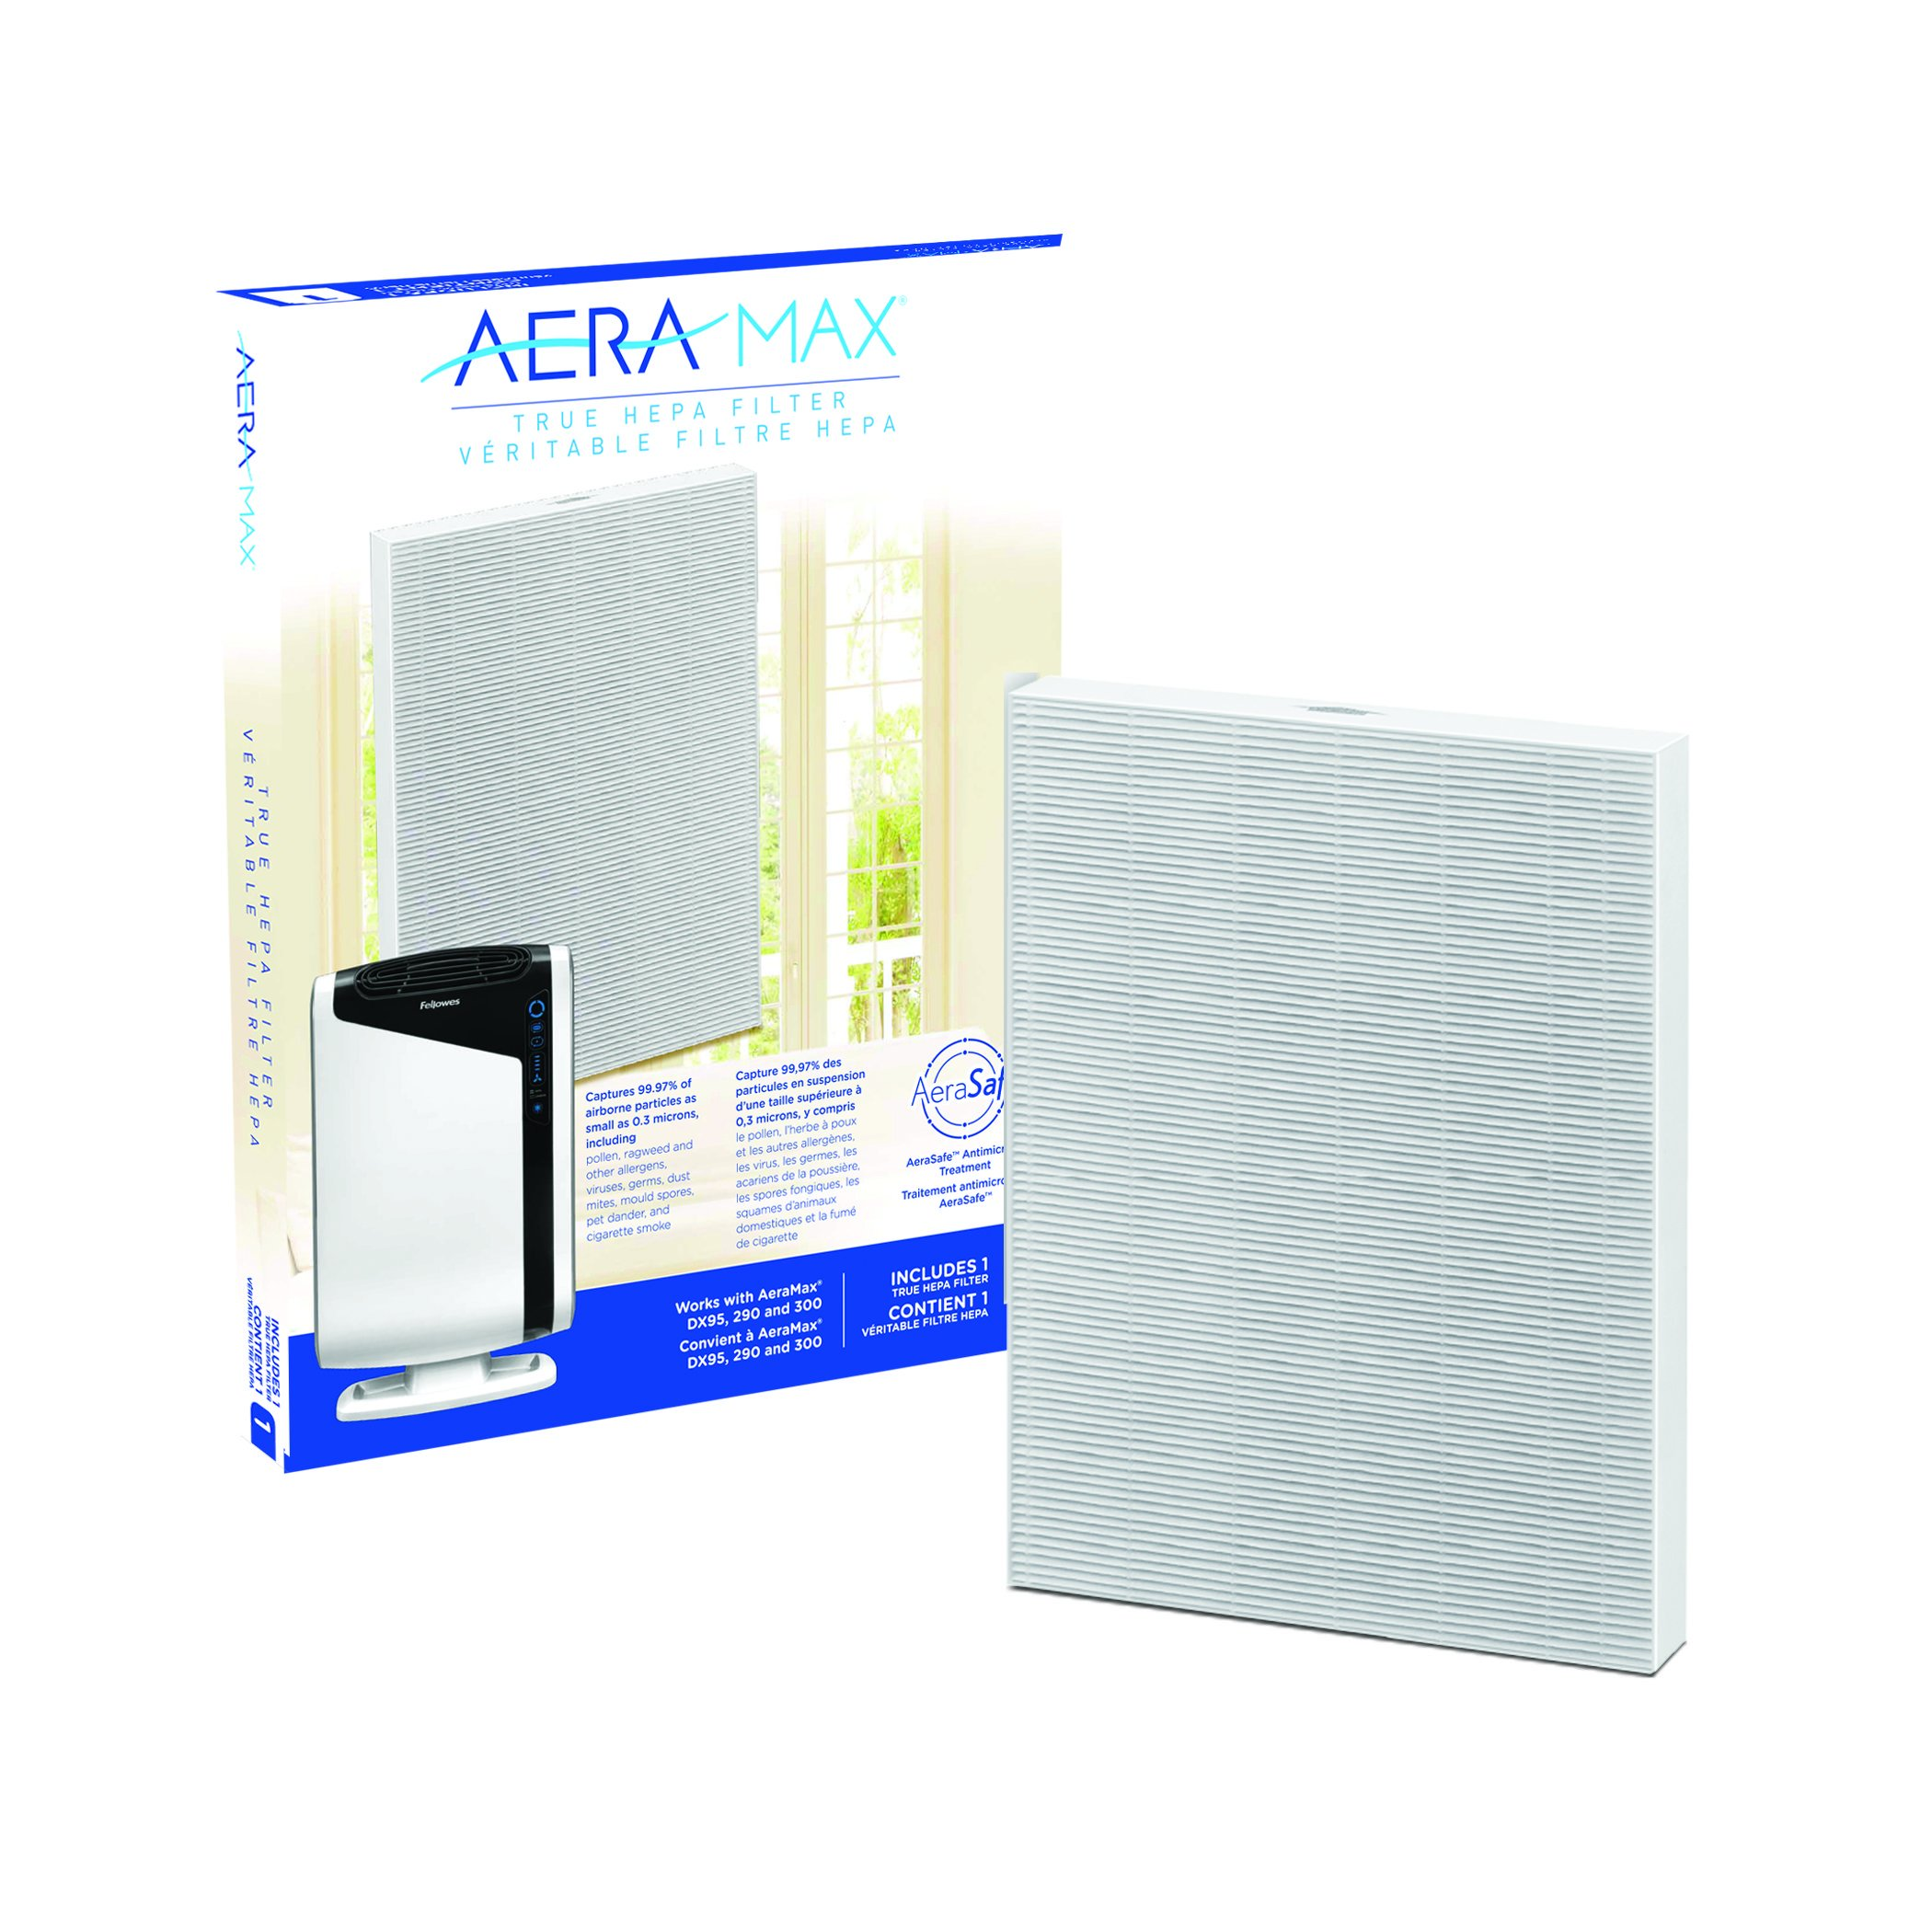 AeraMax 300 Air Purifier True HEPA Authentic Replacement Filter with AeraSafe Antimicrobial Treatment (9287201)